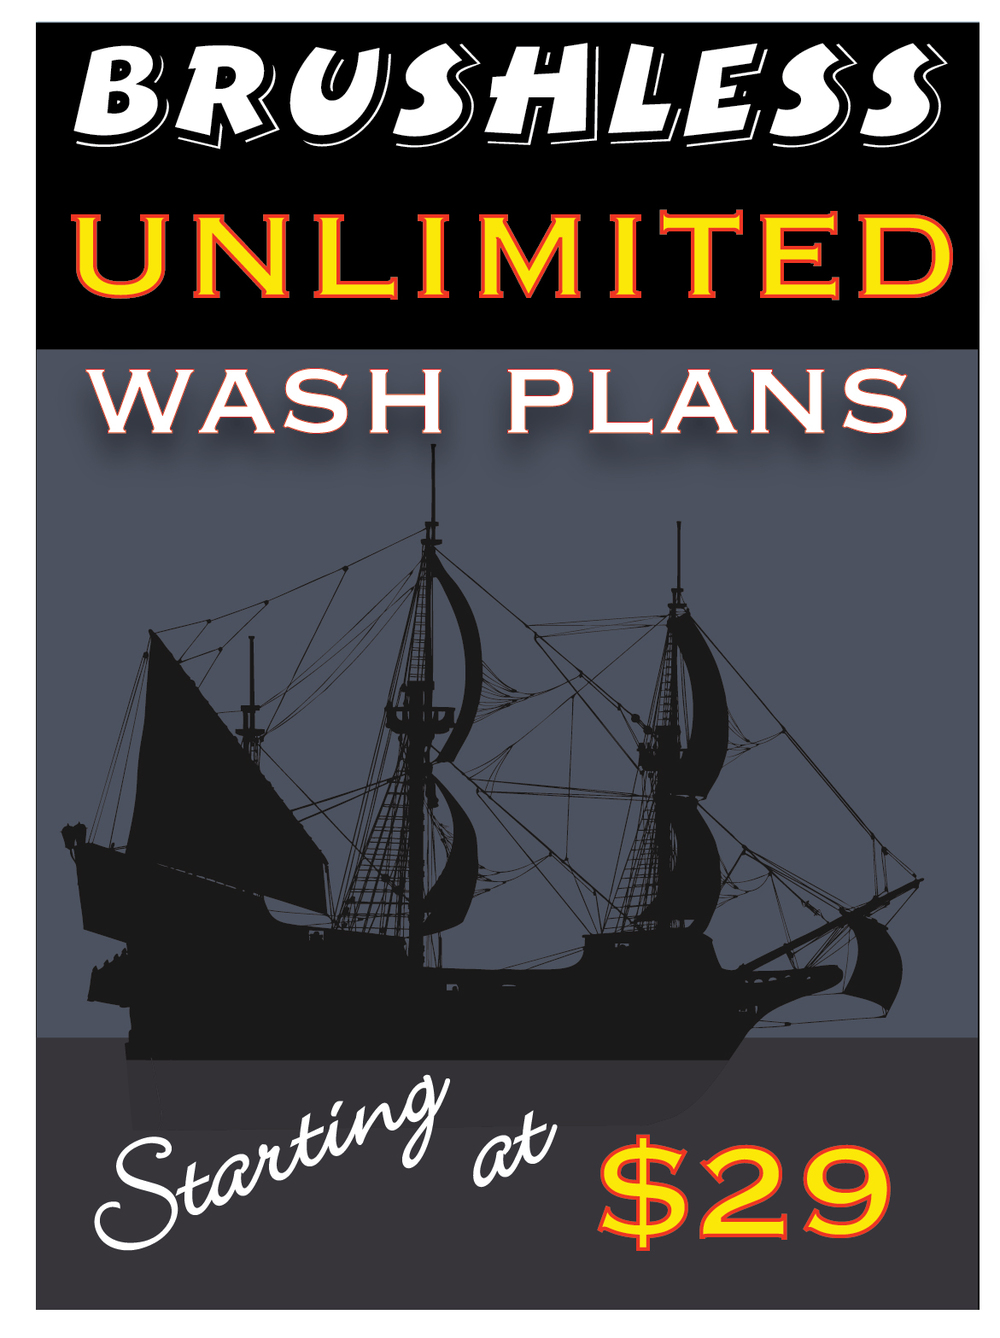 Maximize Your Treasure! Join us with one of our amazing Unlimited Wash Plans.